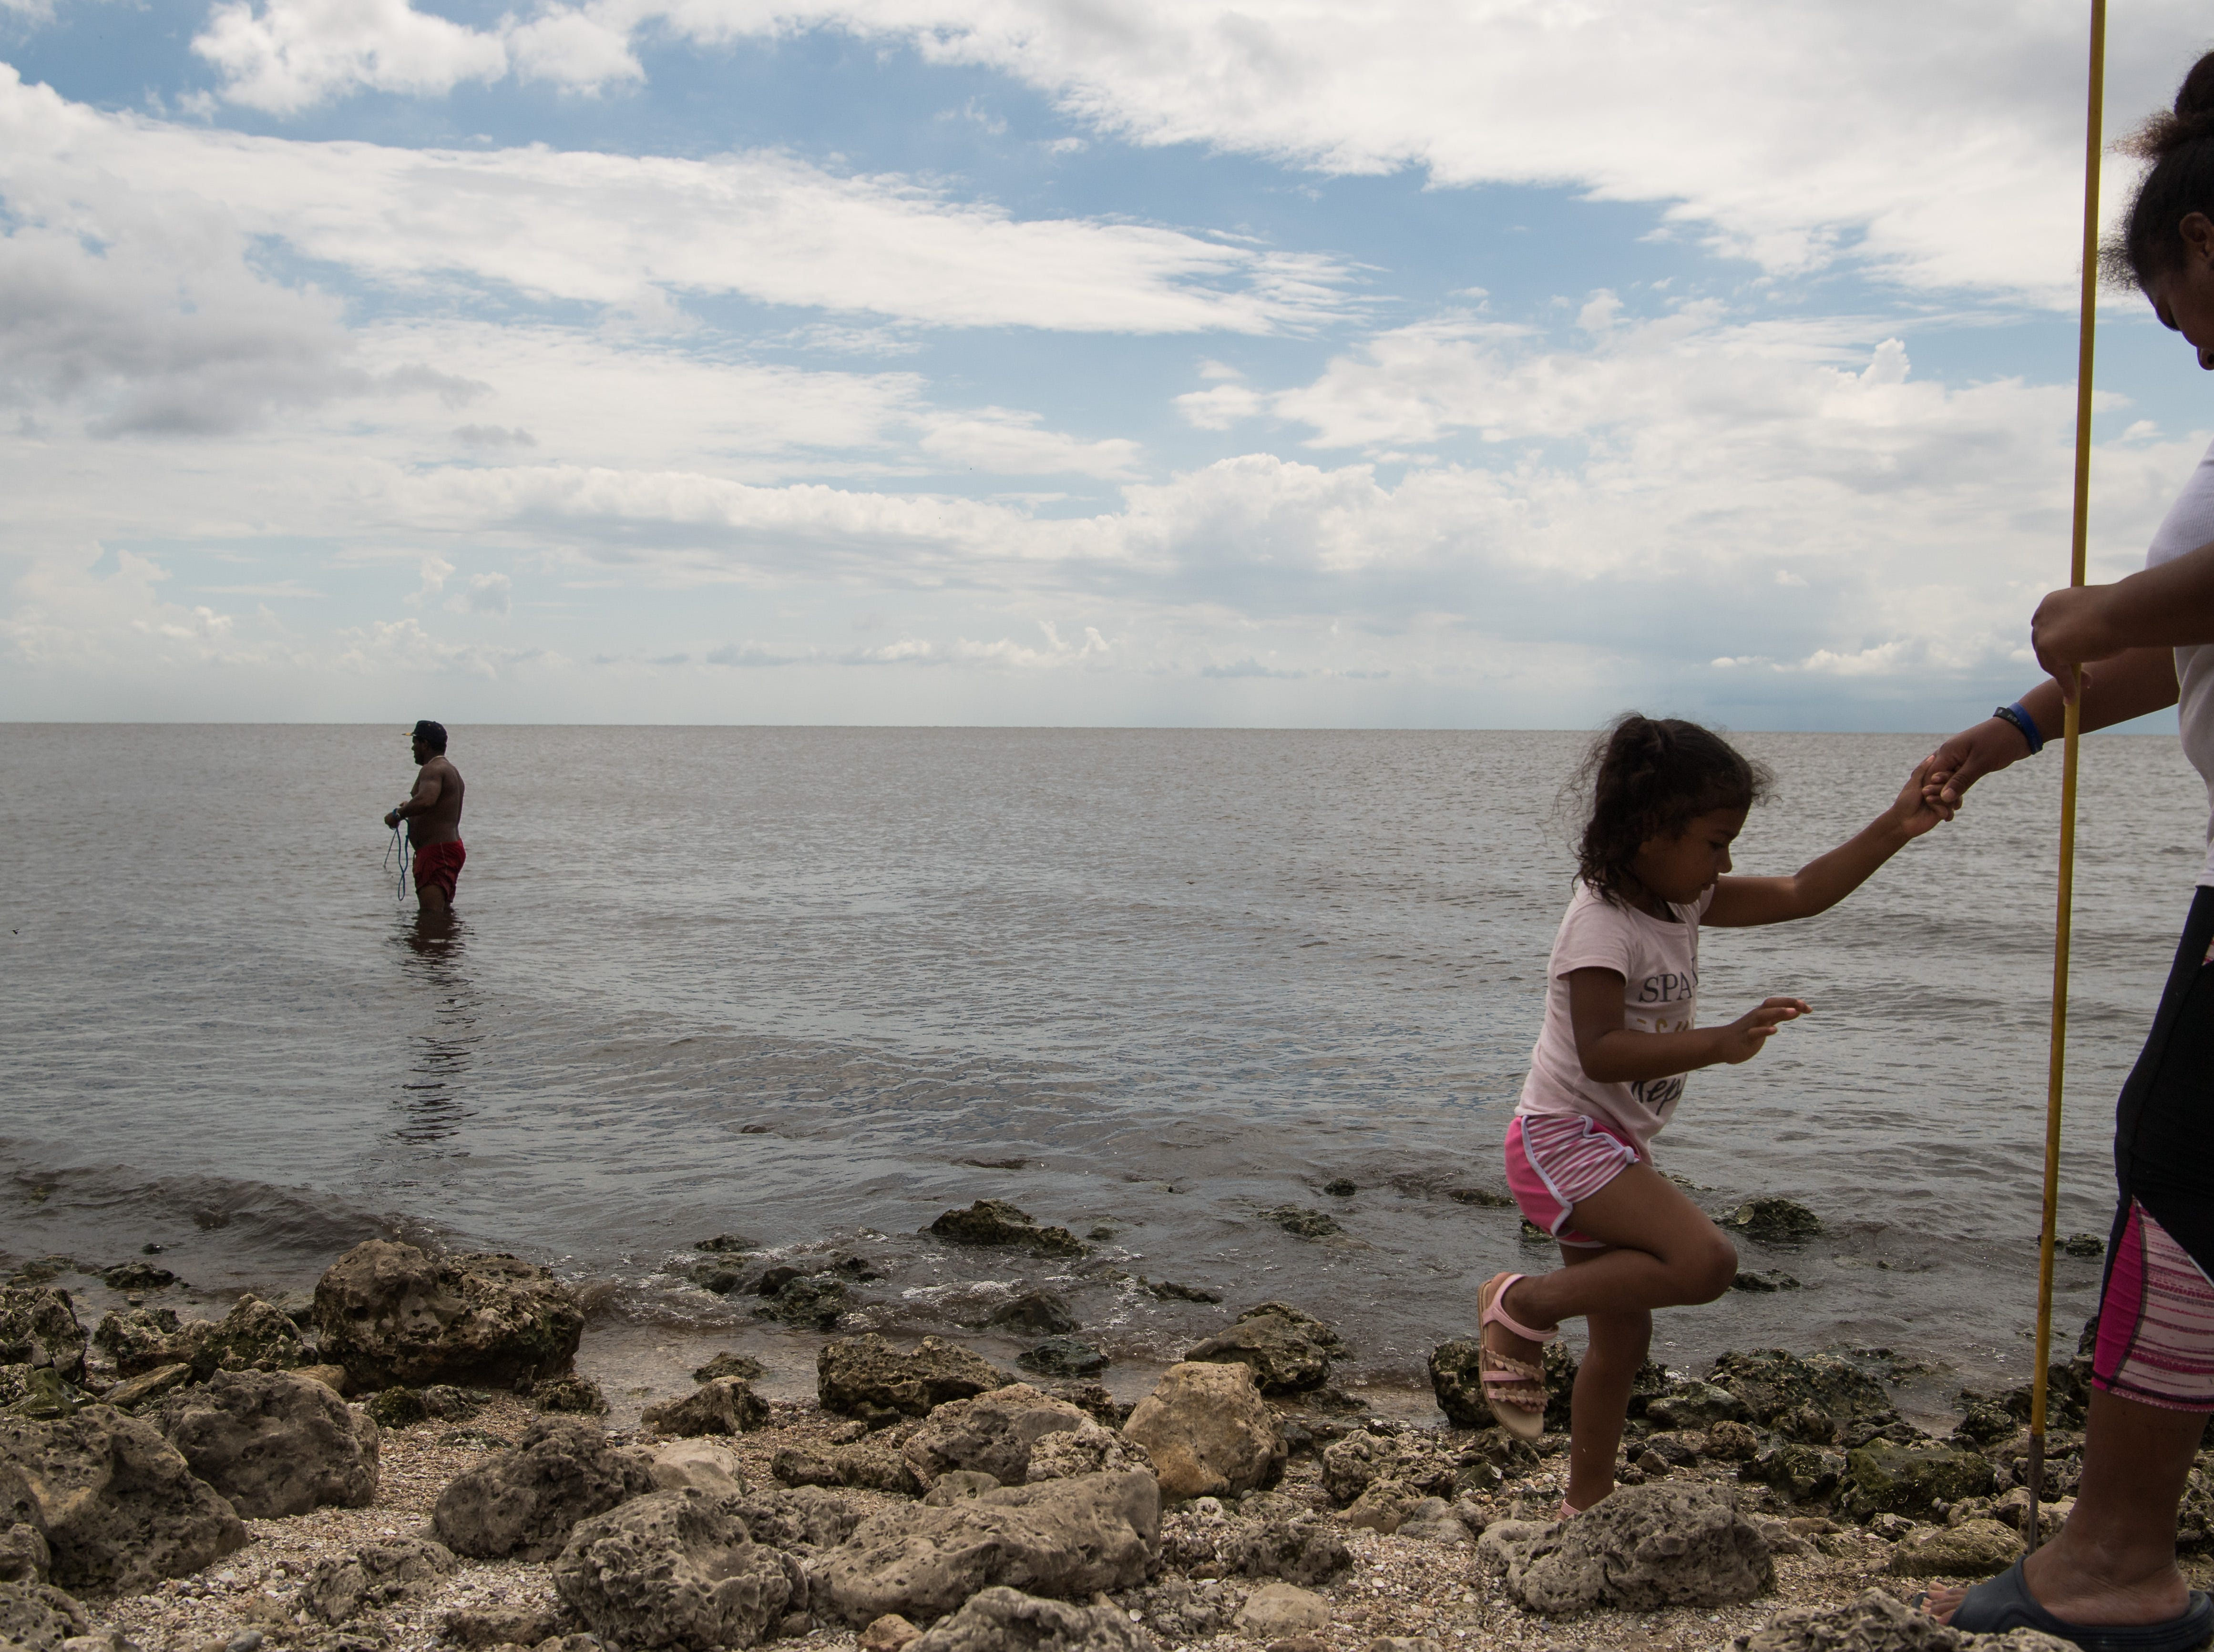 """Douglas Cruz (left), of West Palm Beach, casts for tilapia in the shallow waters of Lake Okeechobee on Tuesday, May 7, 2019, at Port Mayaca. Cruz was spending the day at the lake with partner Angela Rodrigues (right) and her daughter, Daniela Matute, 3. """"She's autistic,"""" Rodrigues said of her daughter, adding that being at the lake is more calming for her than the ocean."""